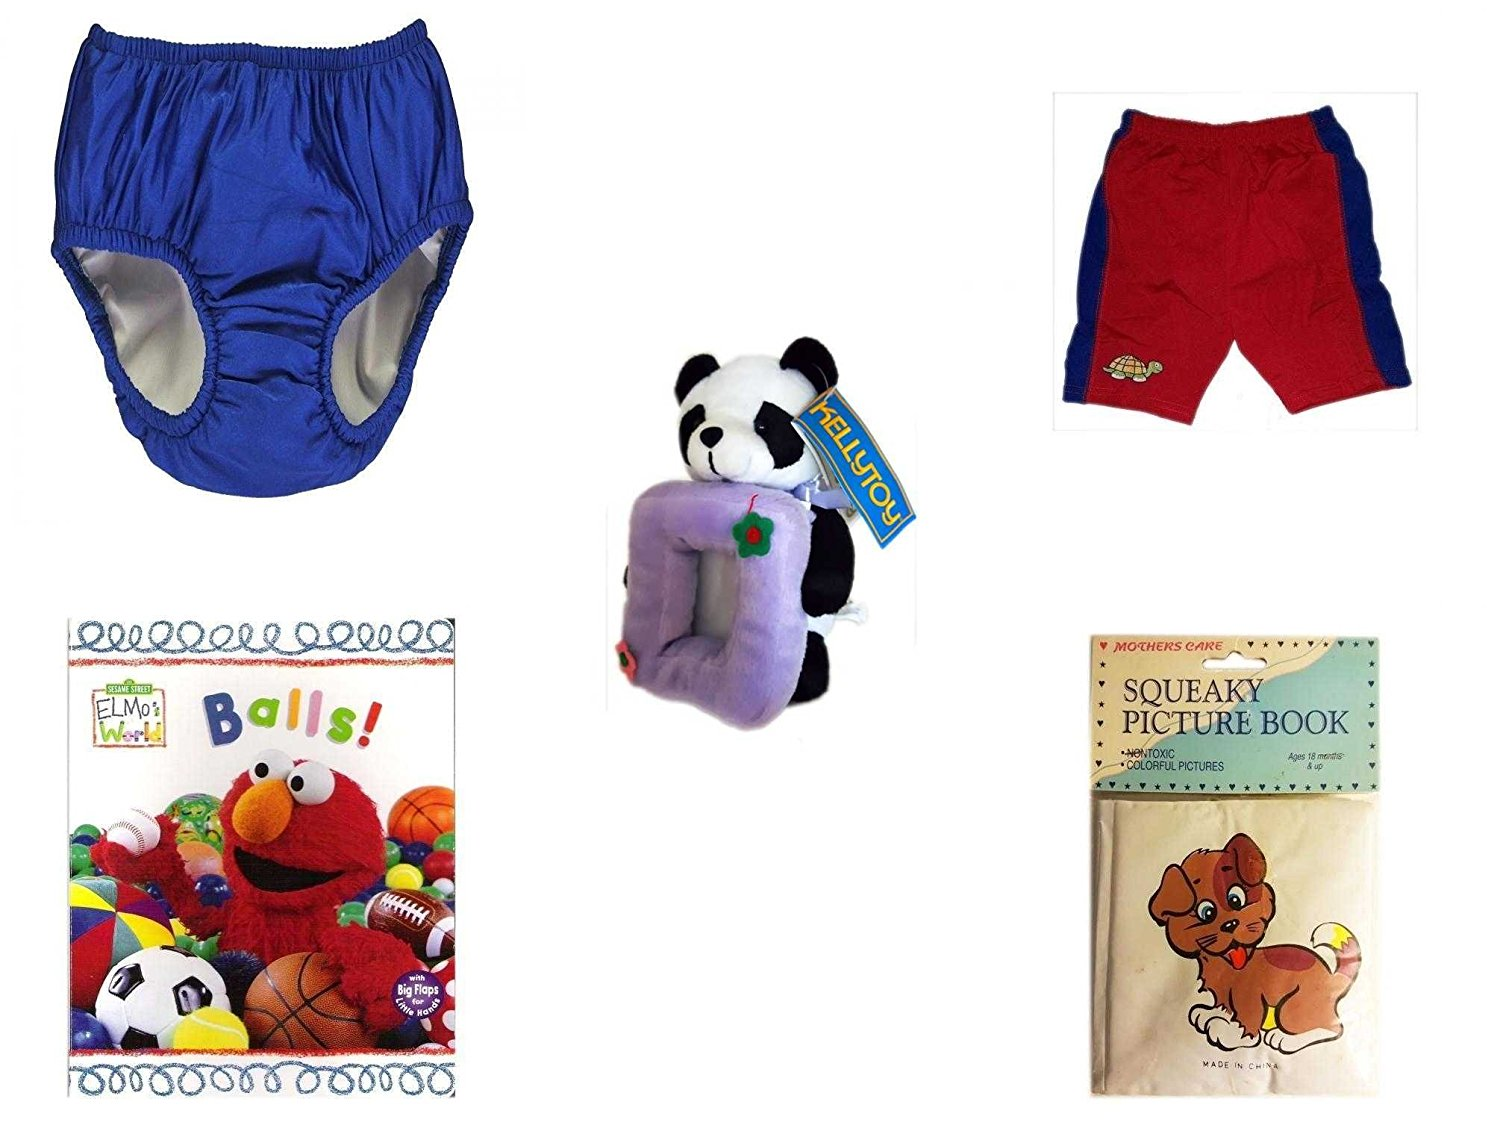 Children's Gift Bundle - Ages 0-2 [5 Piece] - Dan Dee My First Christmas Baby Bear Infant Booties Size 1-2 - Circo Infant Girls Swim Bikini Top Pink Butterfly Size XL 24 Months 25-30 lbs - Gund Baby